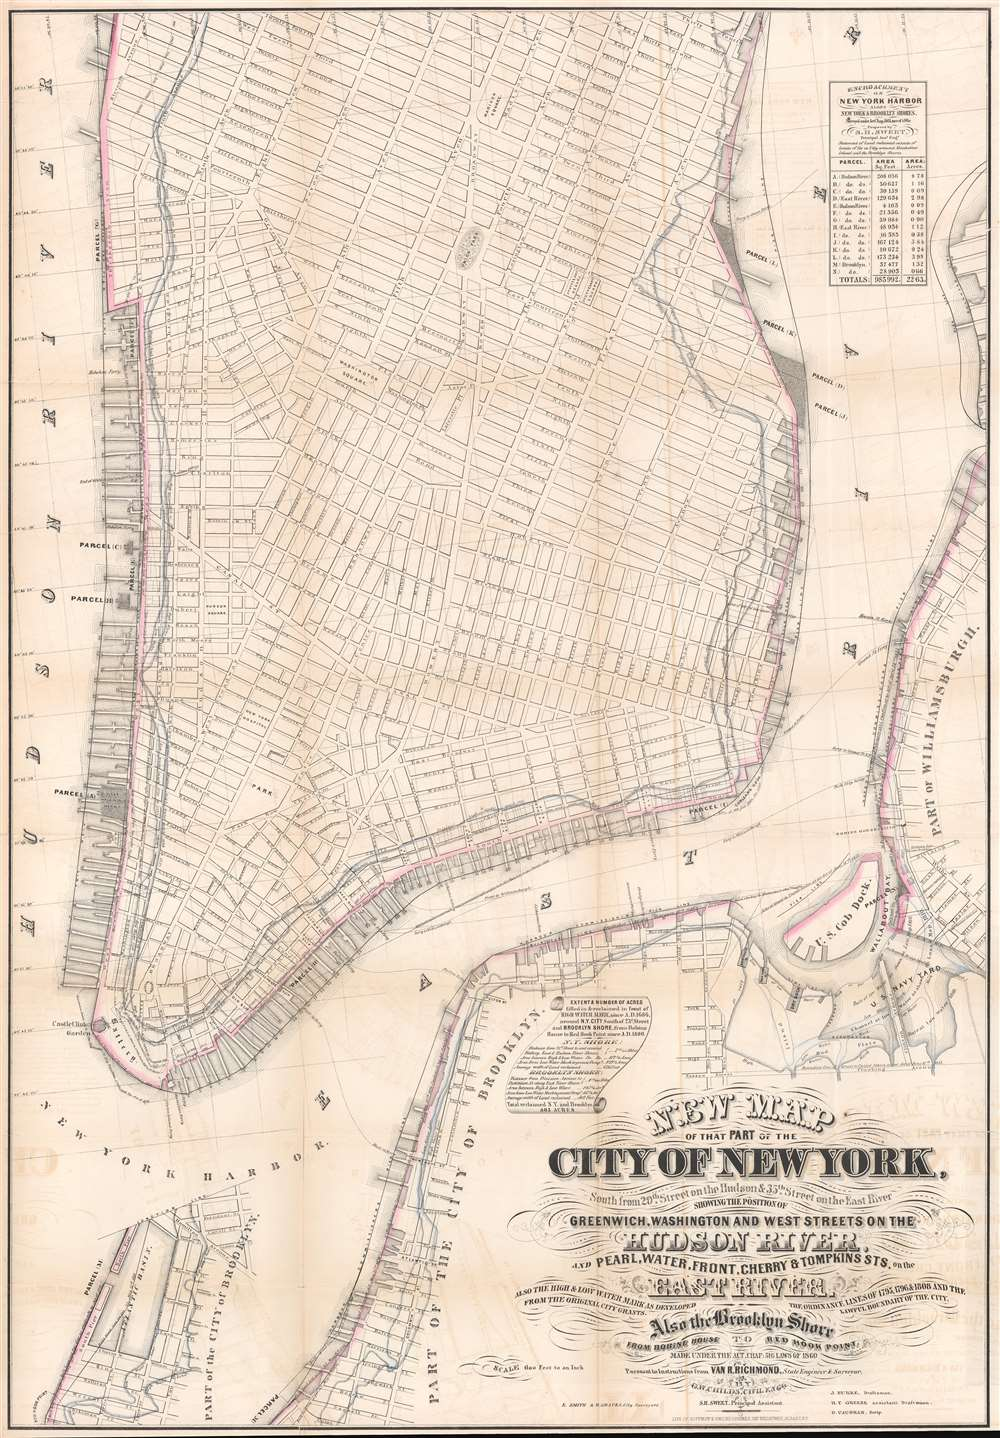 New Map of that Part of the City of New York south from 20th Street on the Hudson and 35th Street on the East River. - Main View